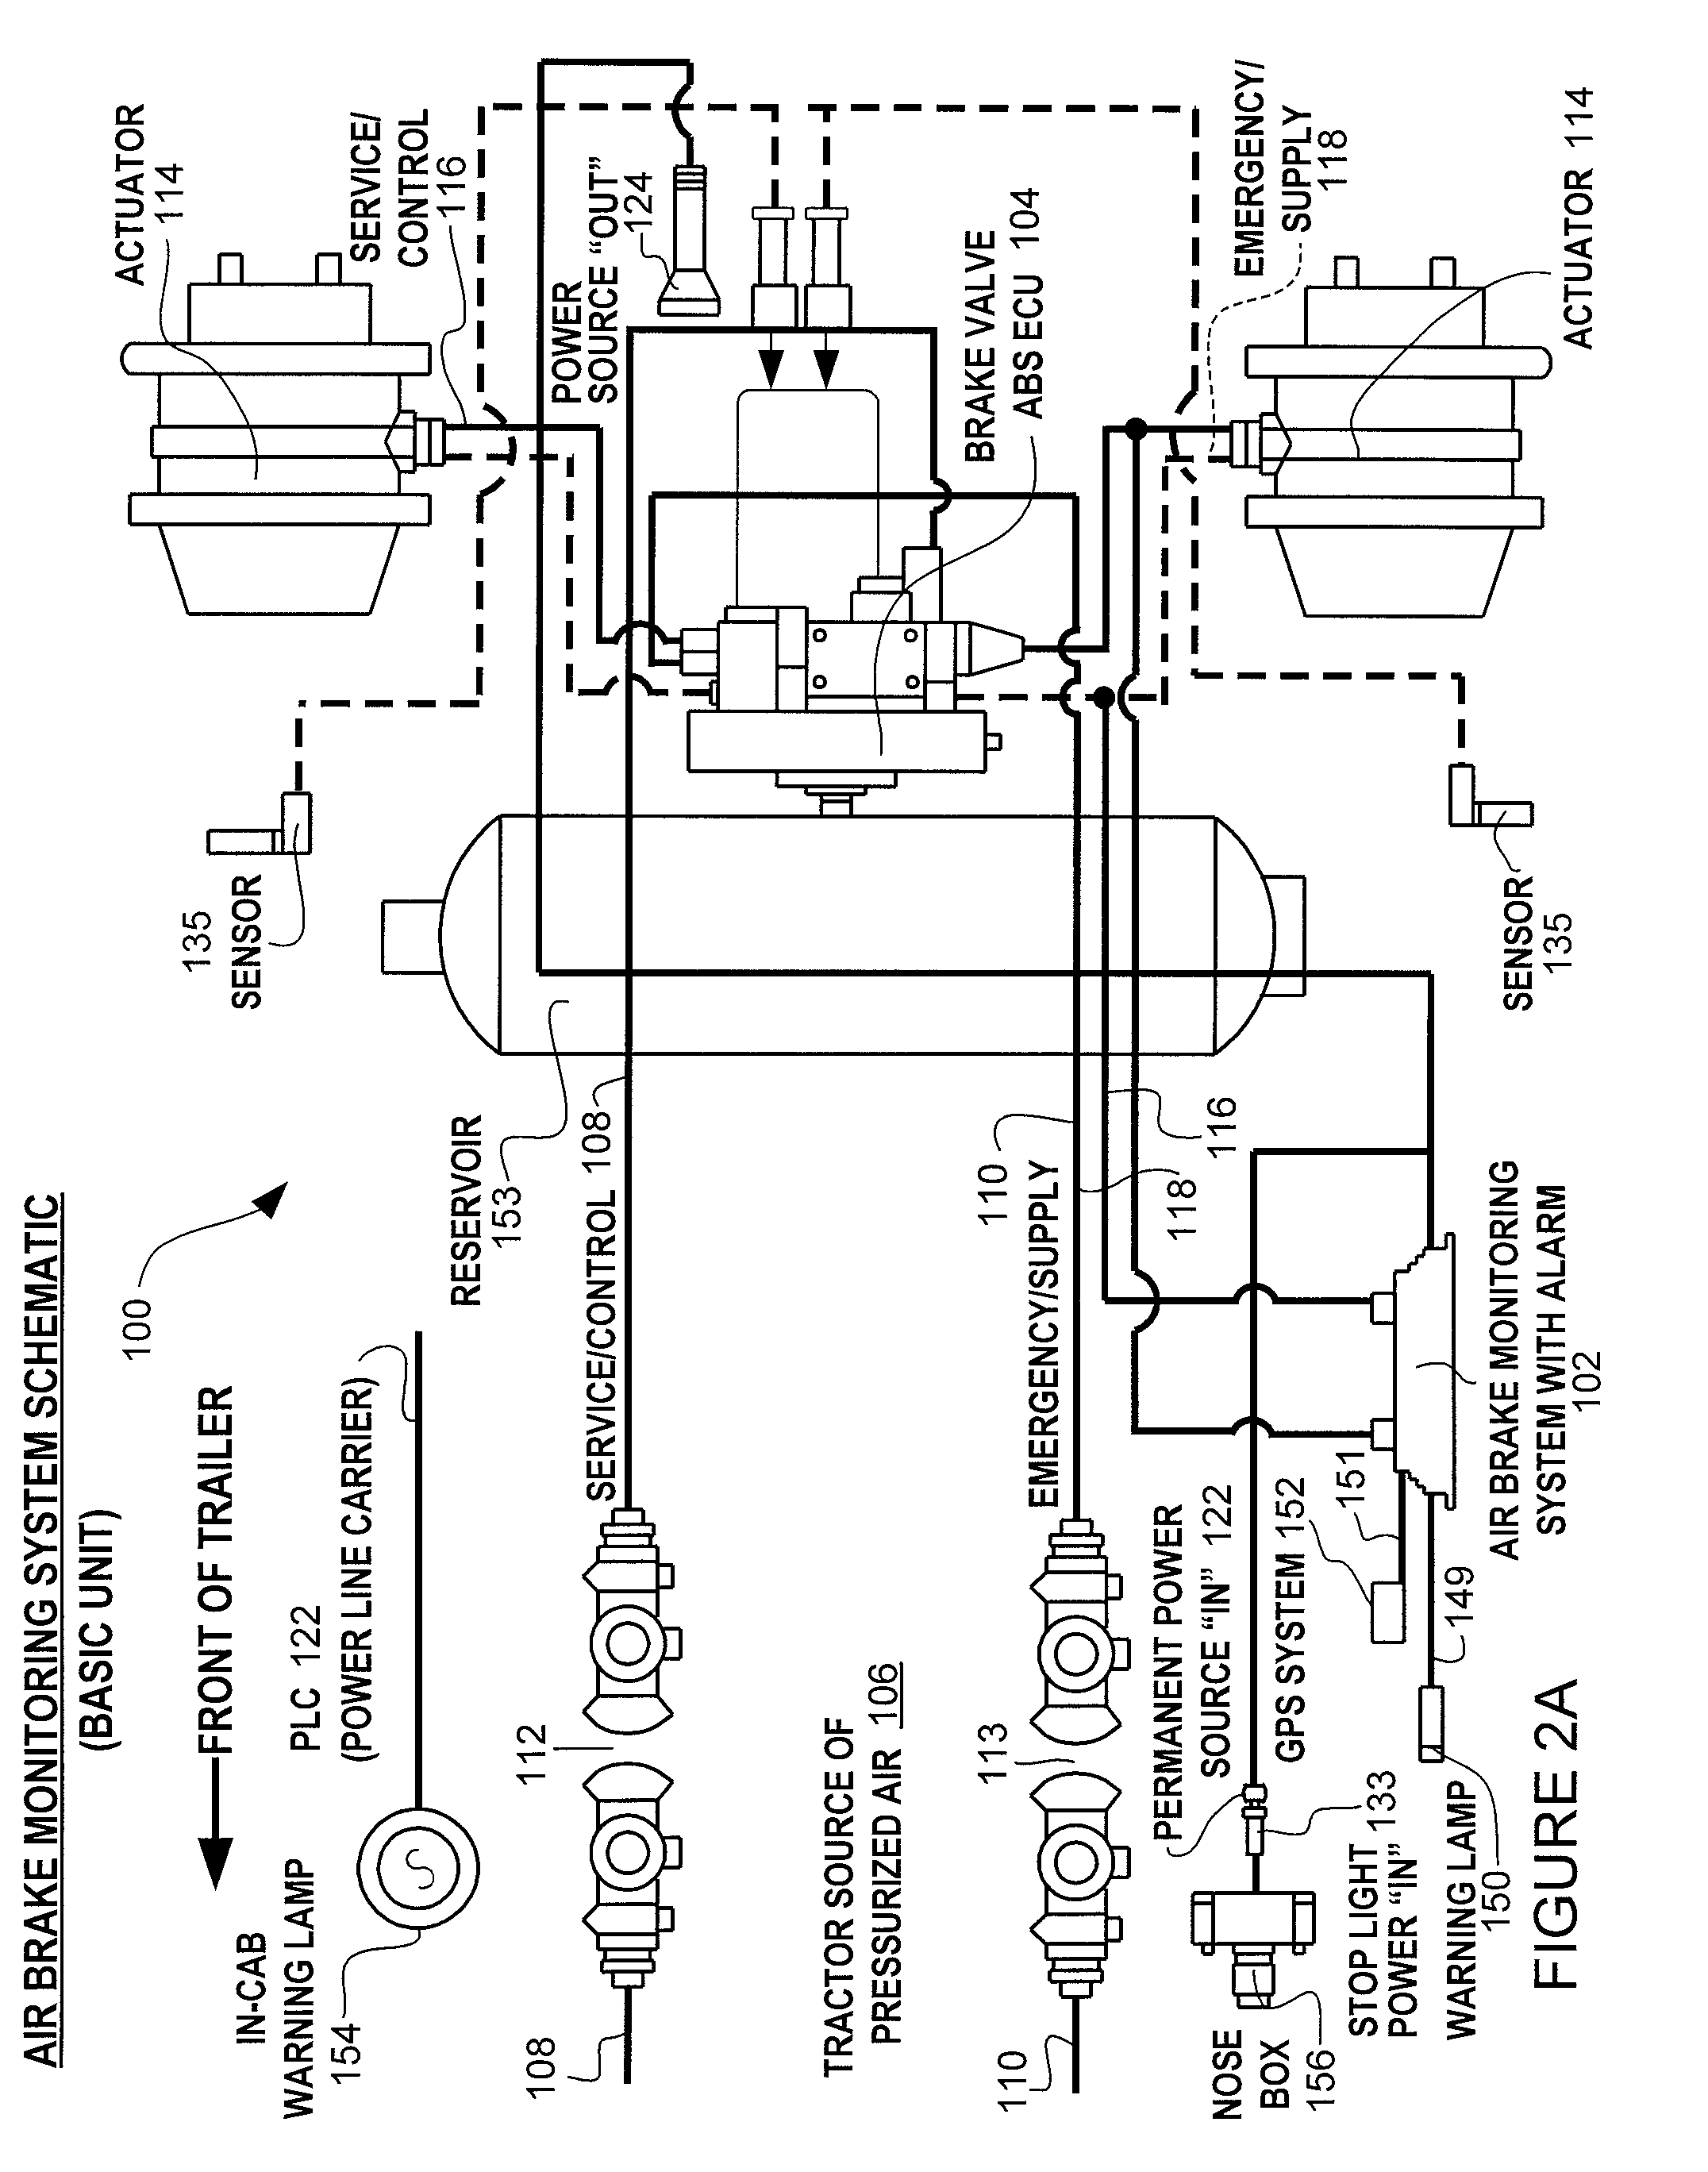 1994 ford l8000 wiring diagram with Us8204668 on 47 Ford Engine Diagram also US8204668 also 6wmgx 1994 Ford E350 Rv Minni Wini Ac Fan Blower Not Working in addition Schematics b as well Discussion C990 ds443303.